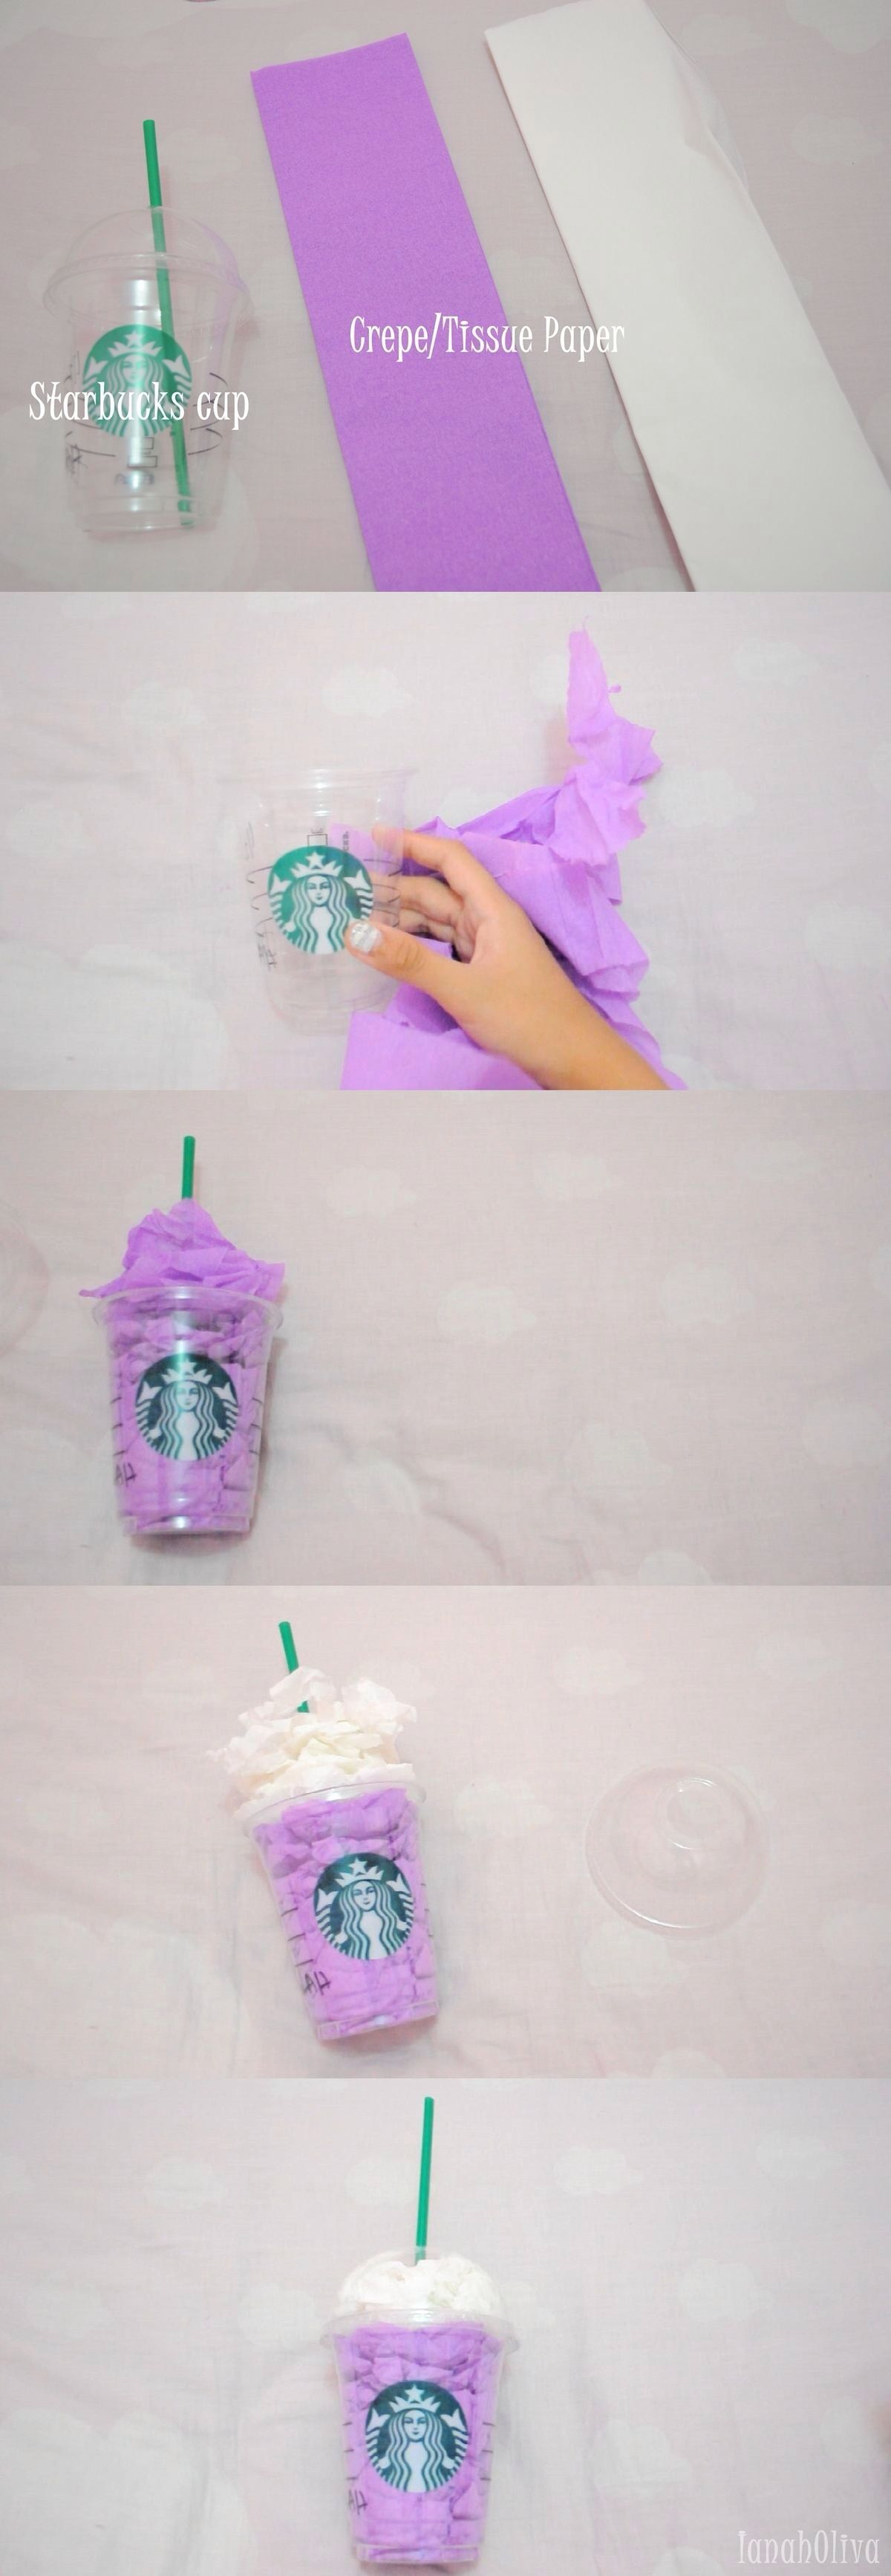 DIY Room Decor Starbucks Cup DIY Craft For Teens DIY Pinterest Diy Roo